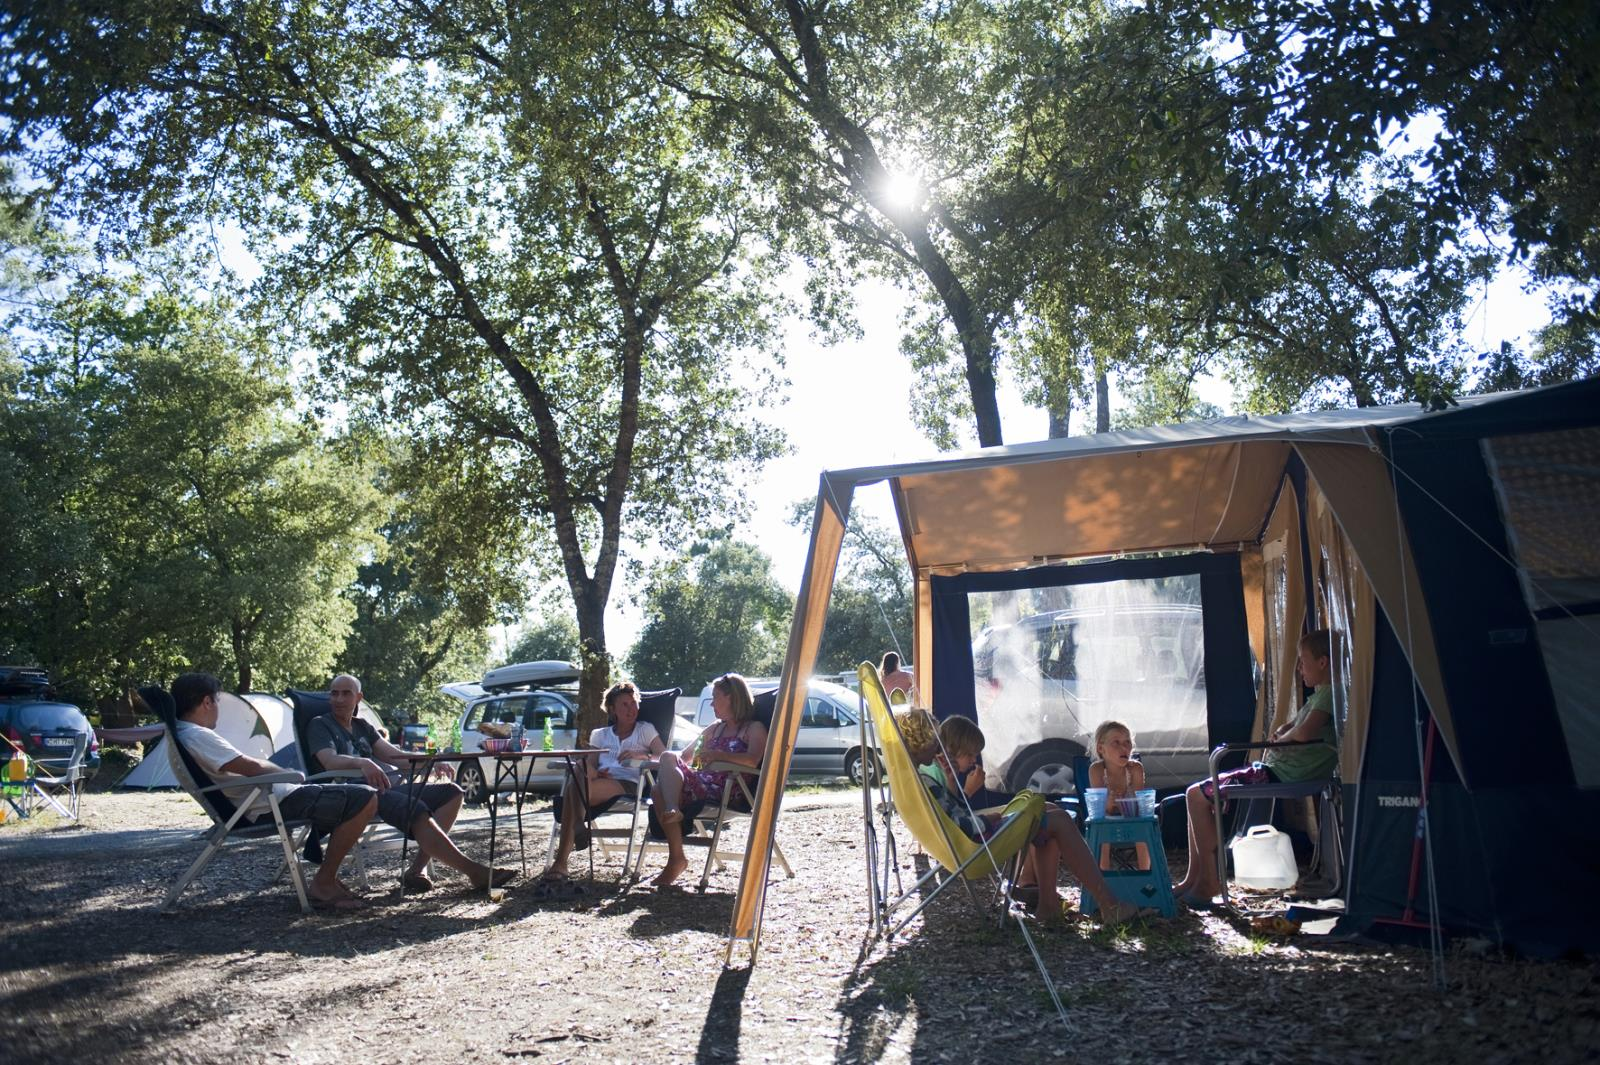 Emplacement - Emplacement Camping + Confort - Huttopia Oléron Chênes Verts